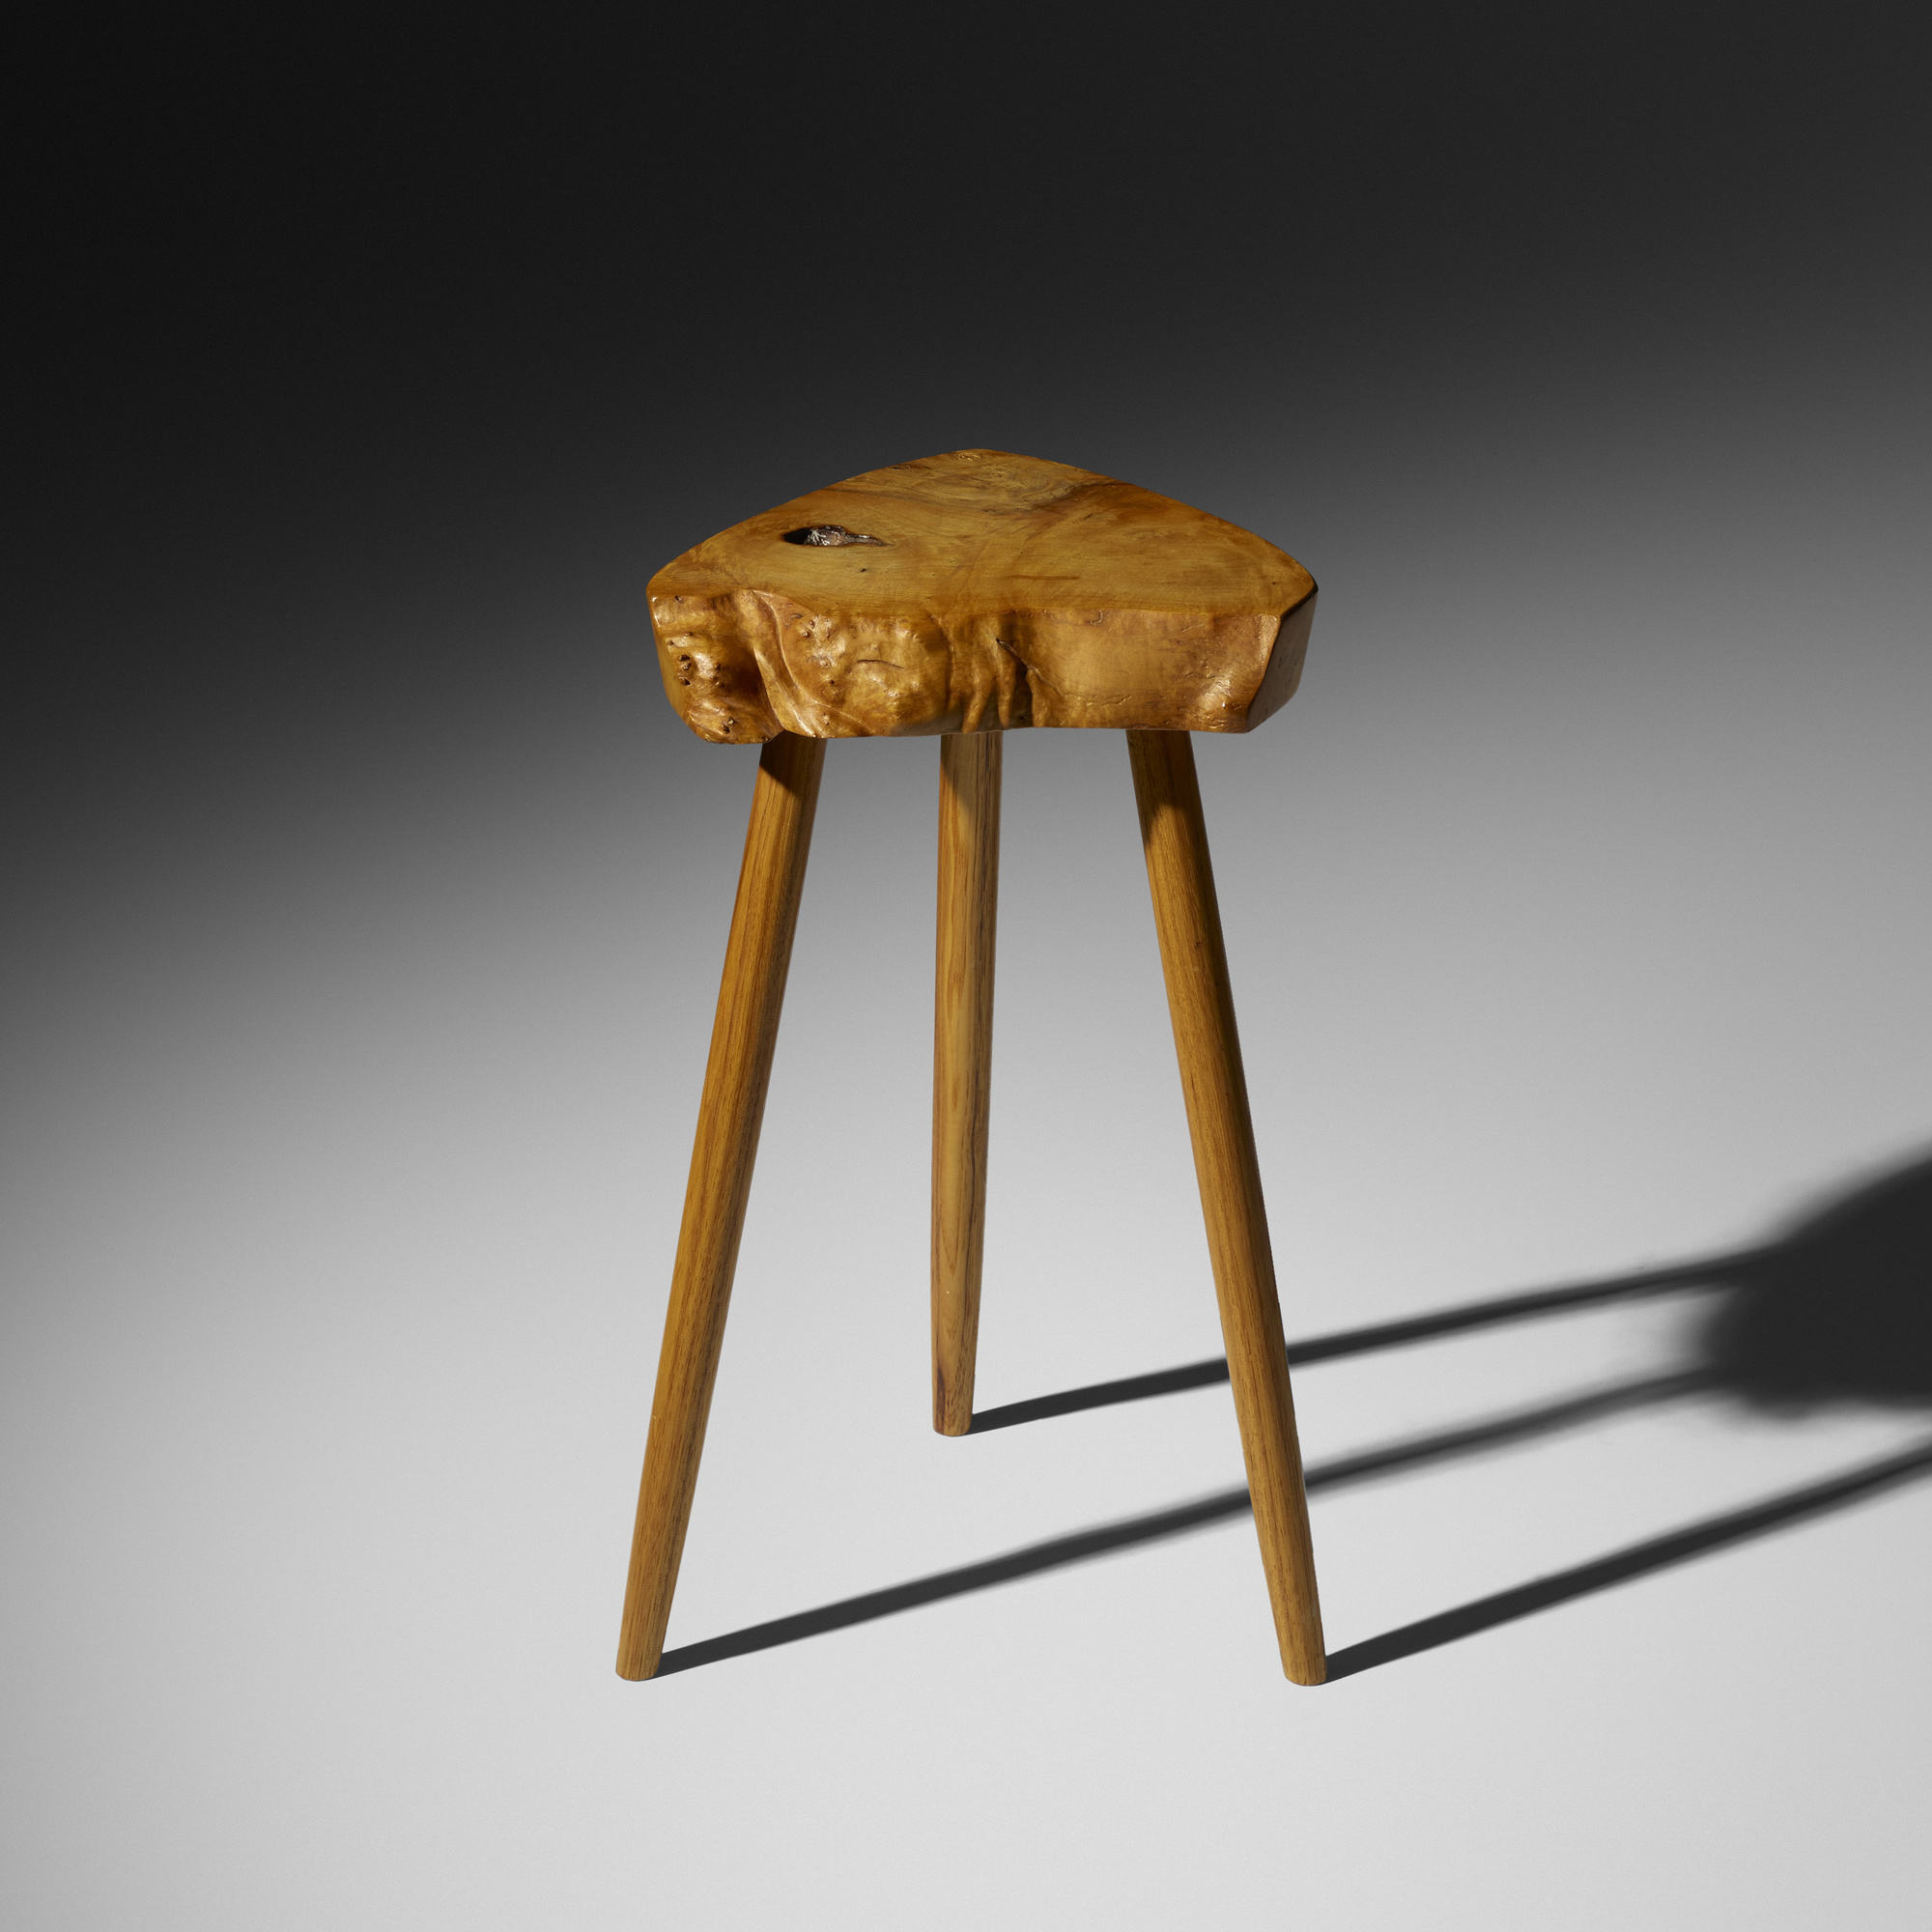 100: George Nakashima / Wepman occasional table (1 of 3)